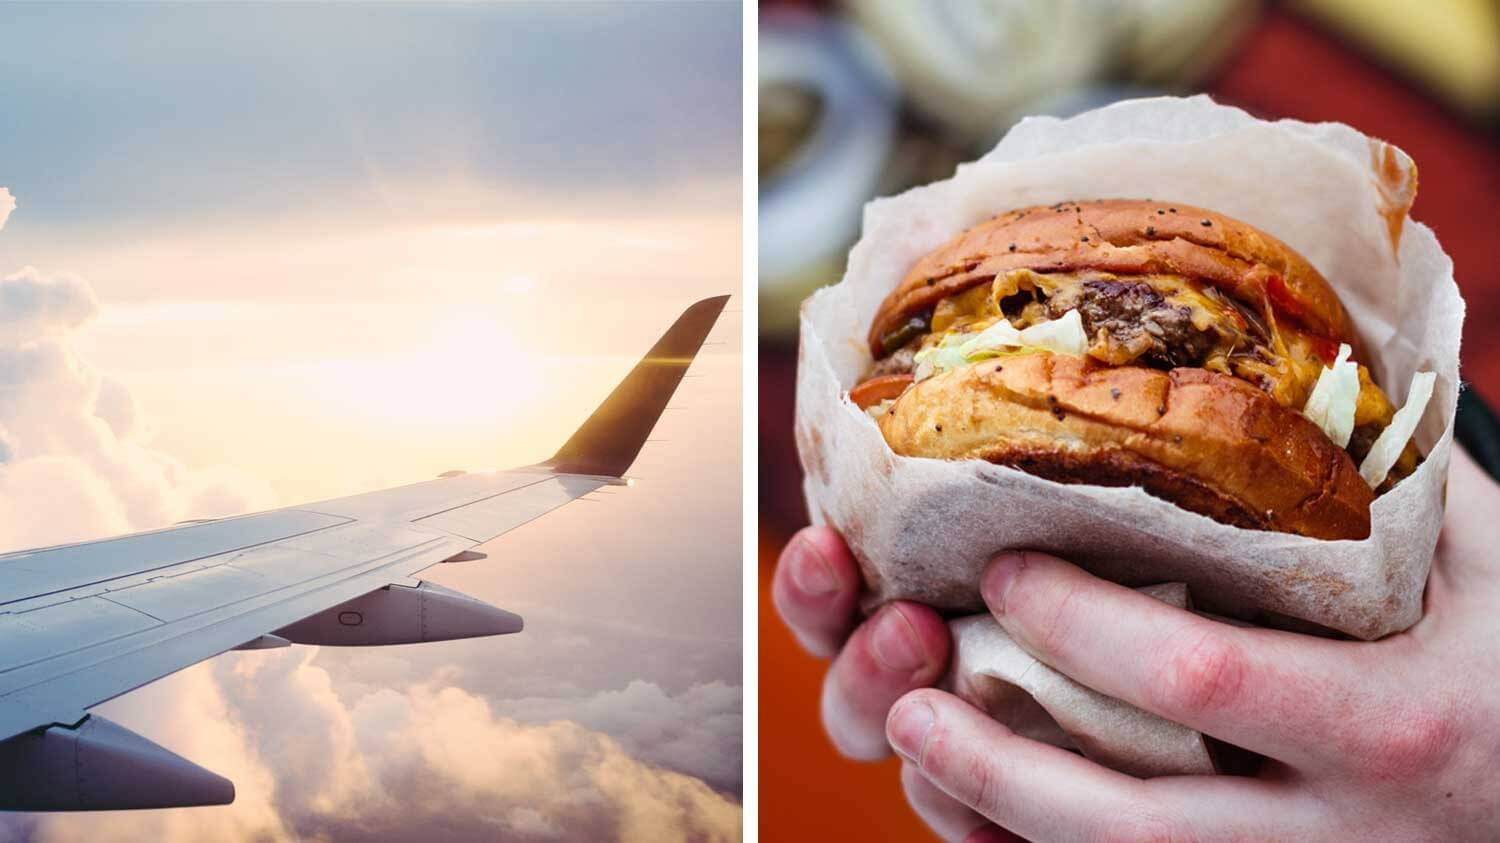 Ditching Meat for a Year Saves the Equivalent CO2 As Flying 4,000 Miles